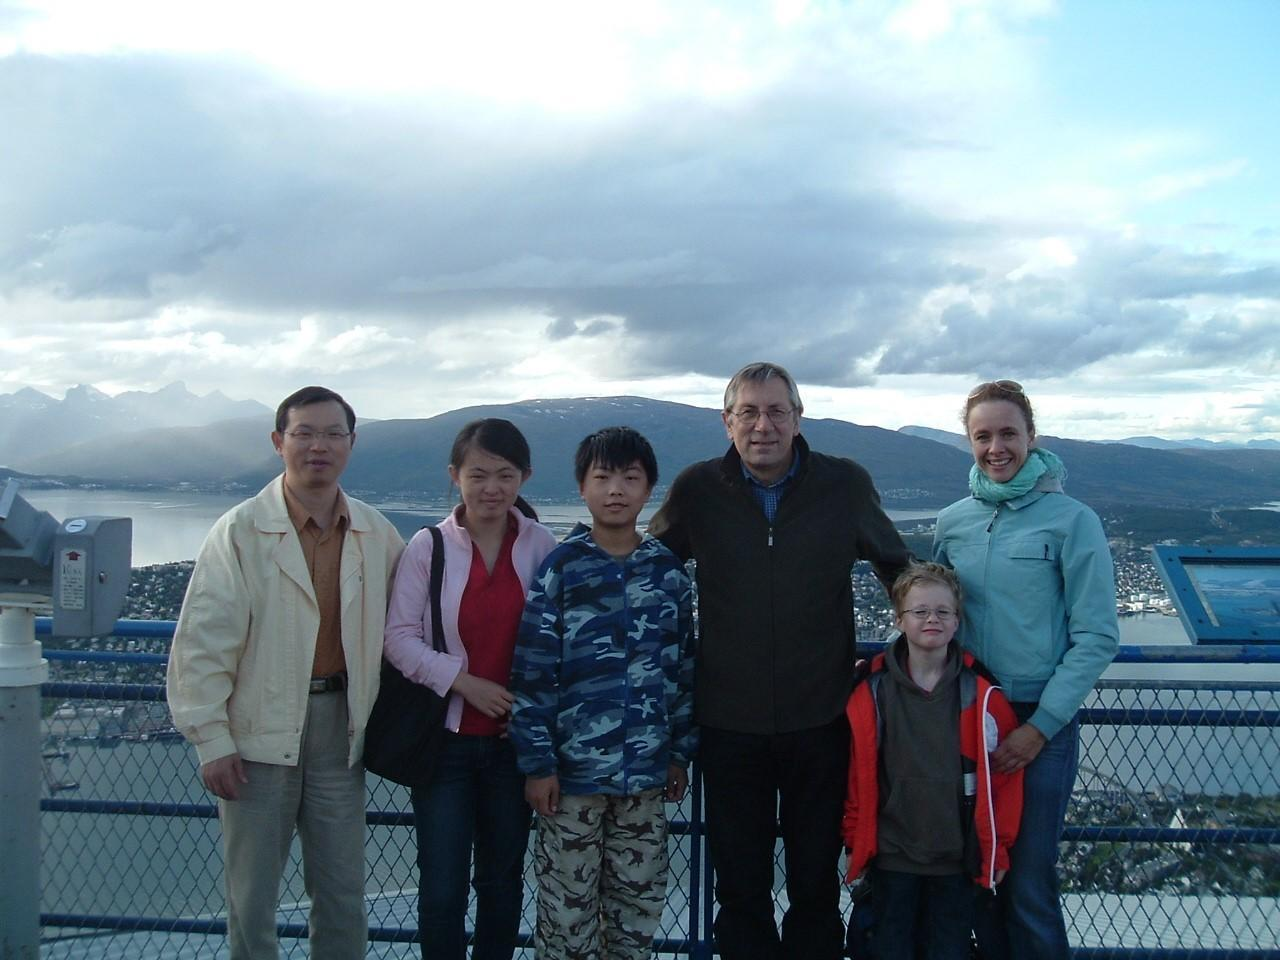 Dr. Ni and family on vacation.